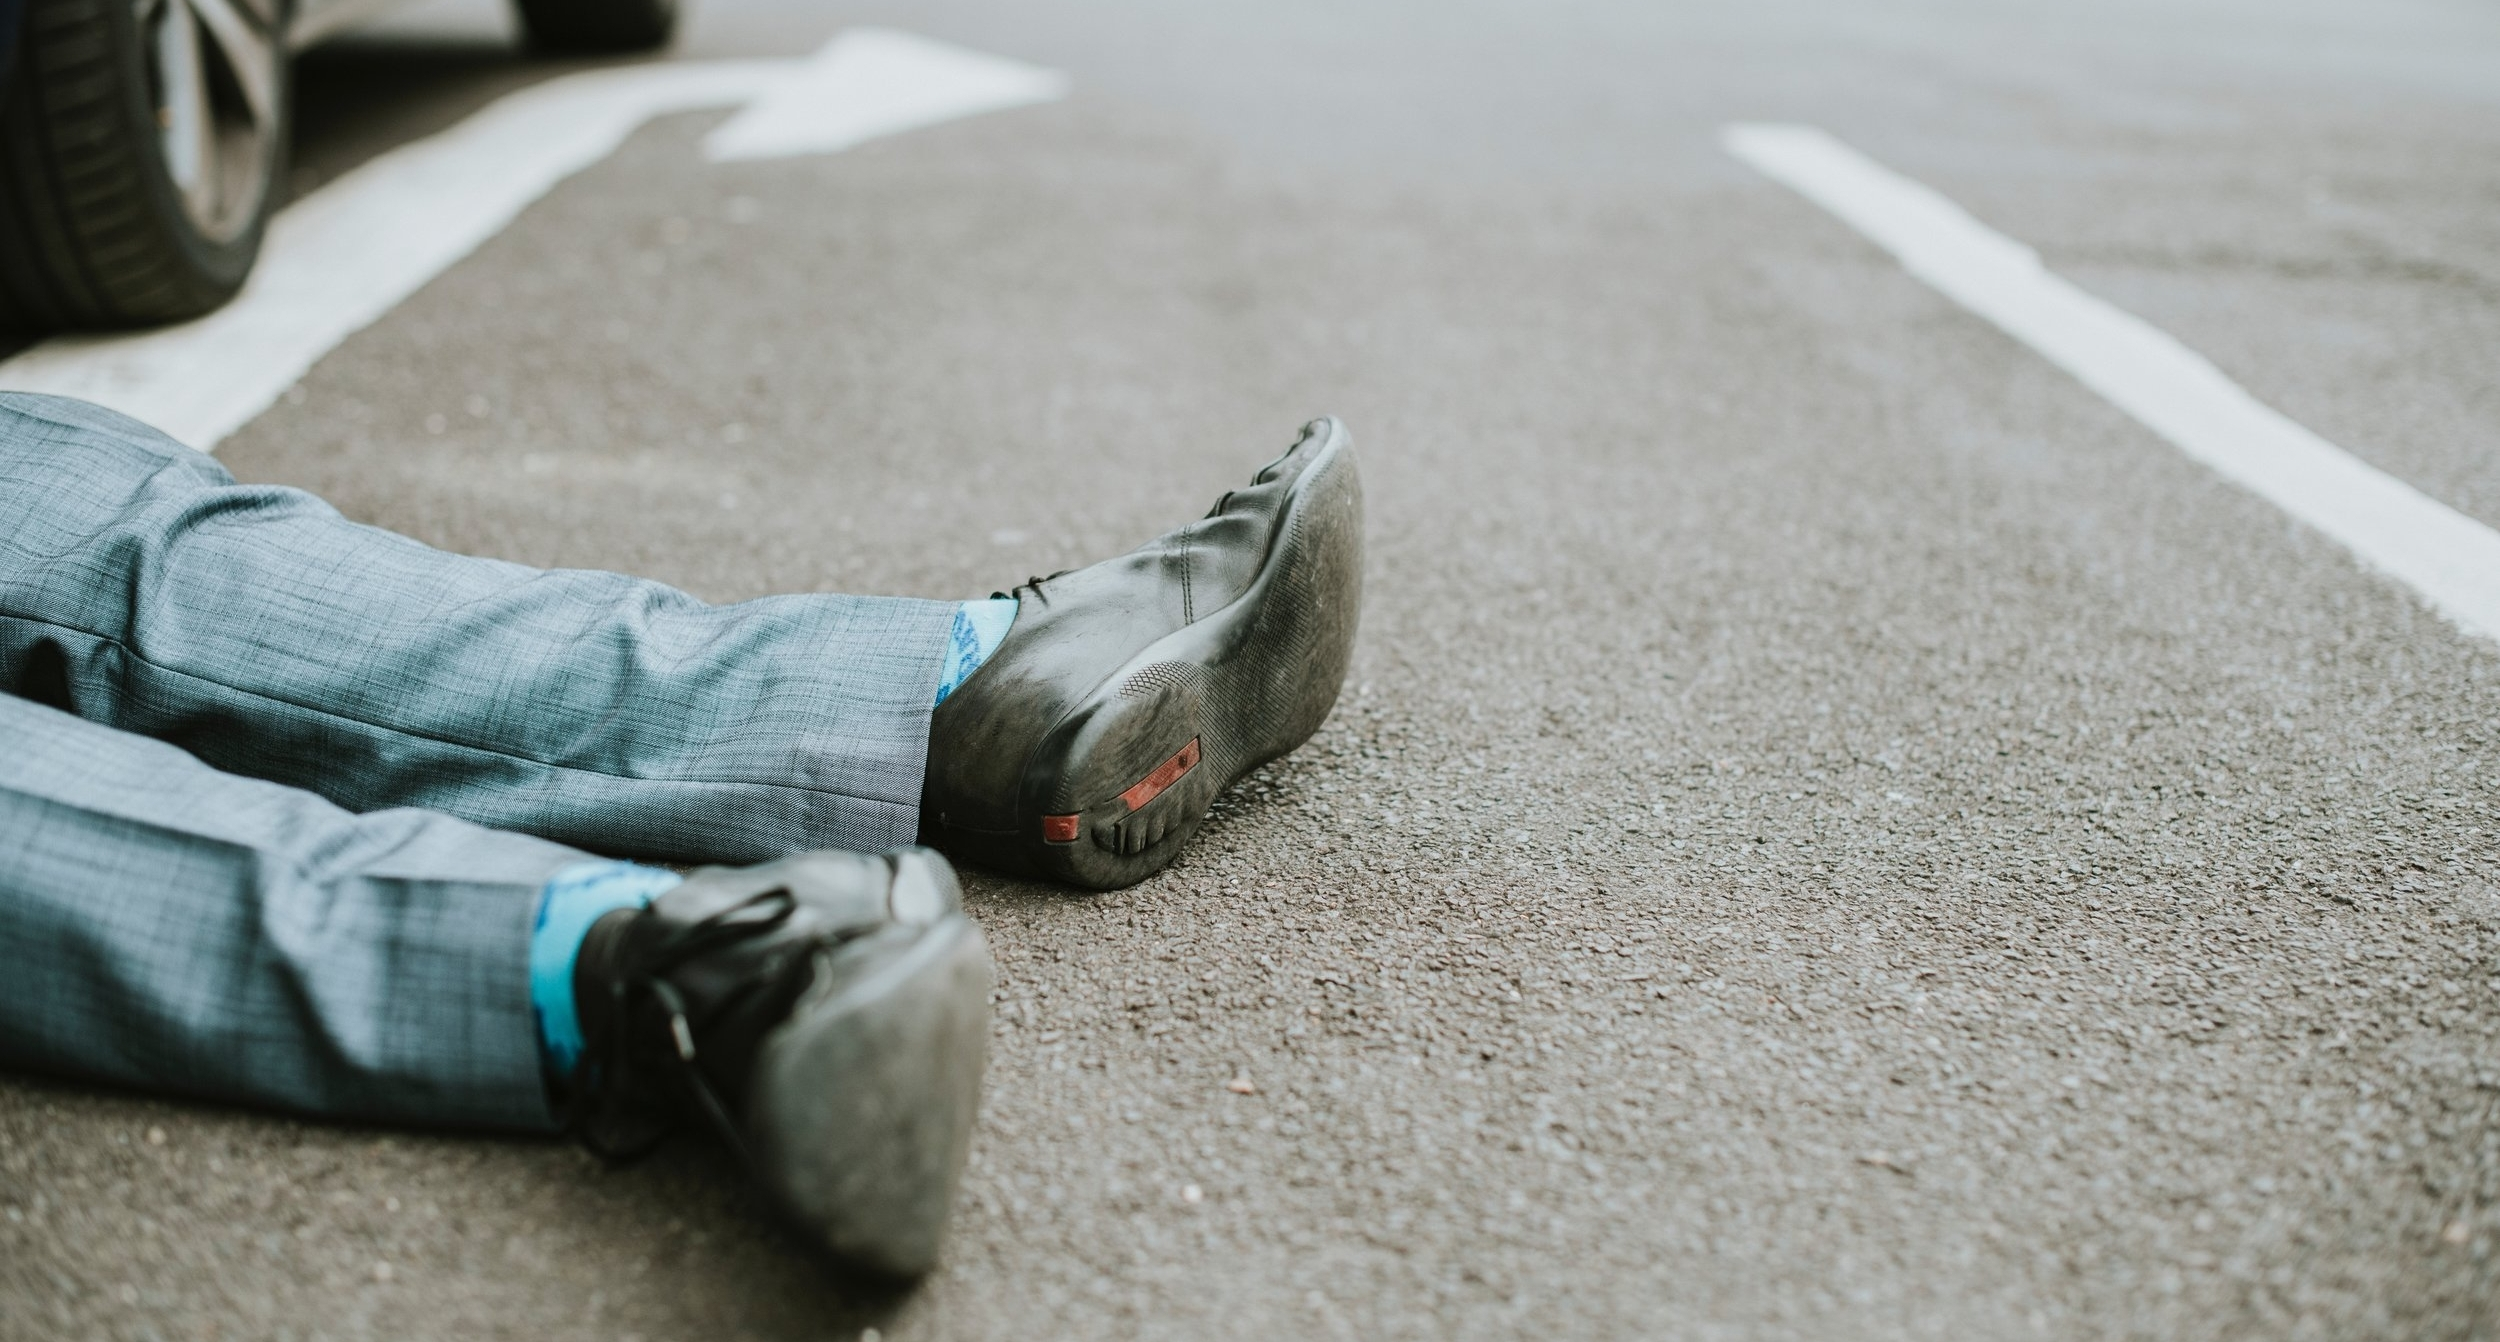 Photograph: image of feet from an unconscious person laying in front of a car.